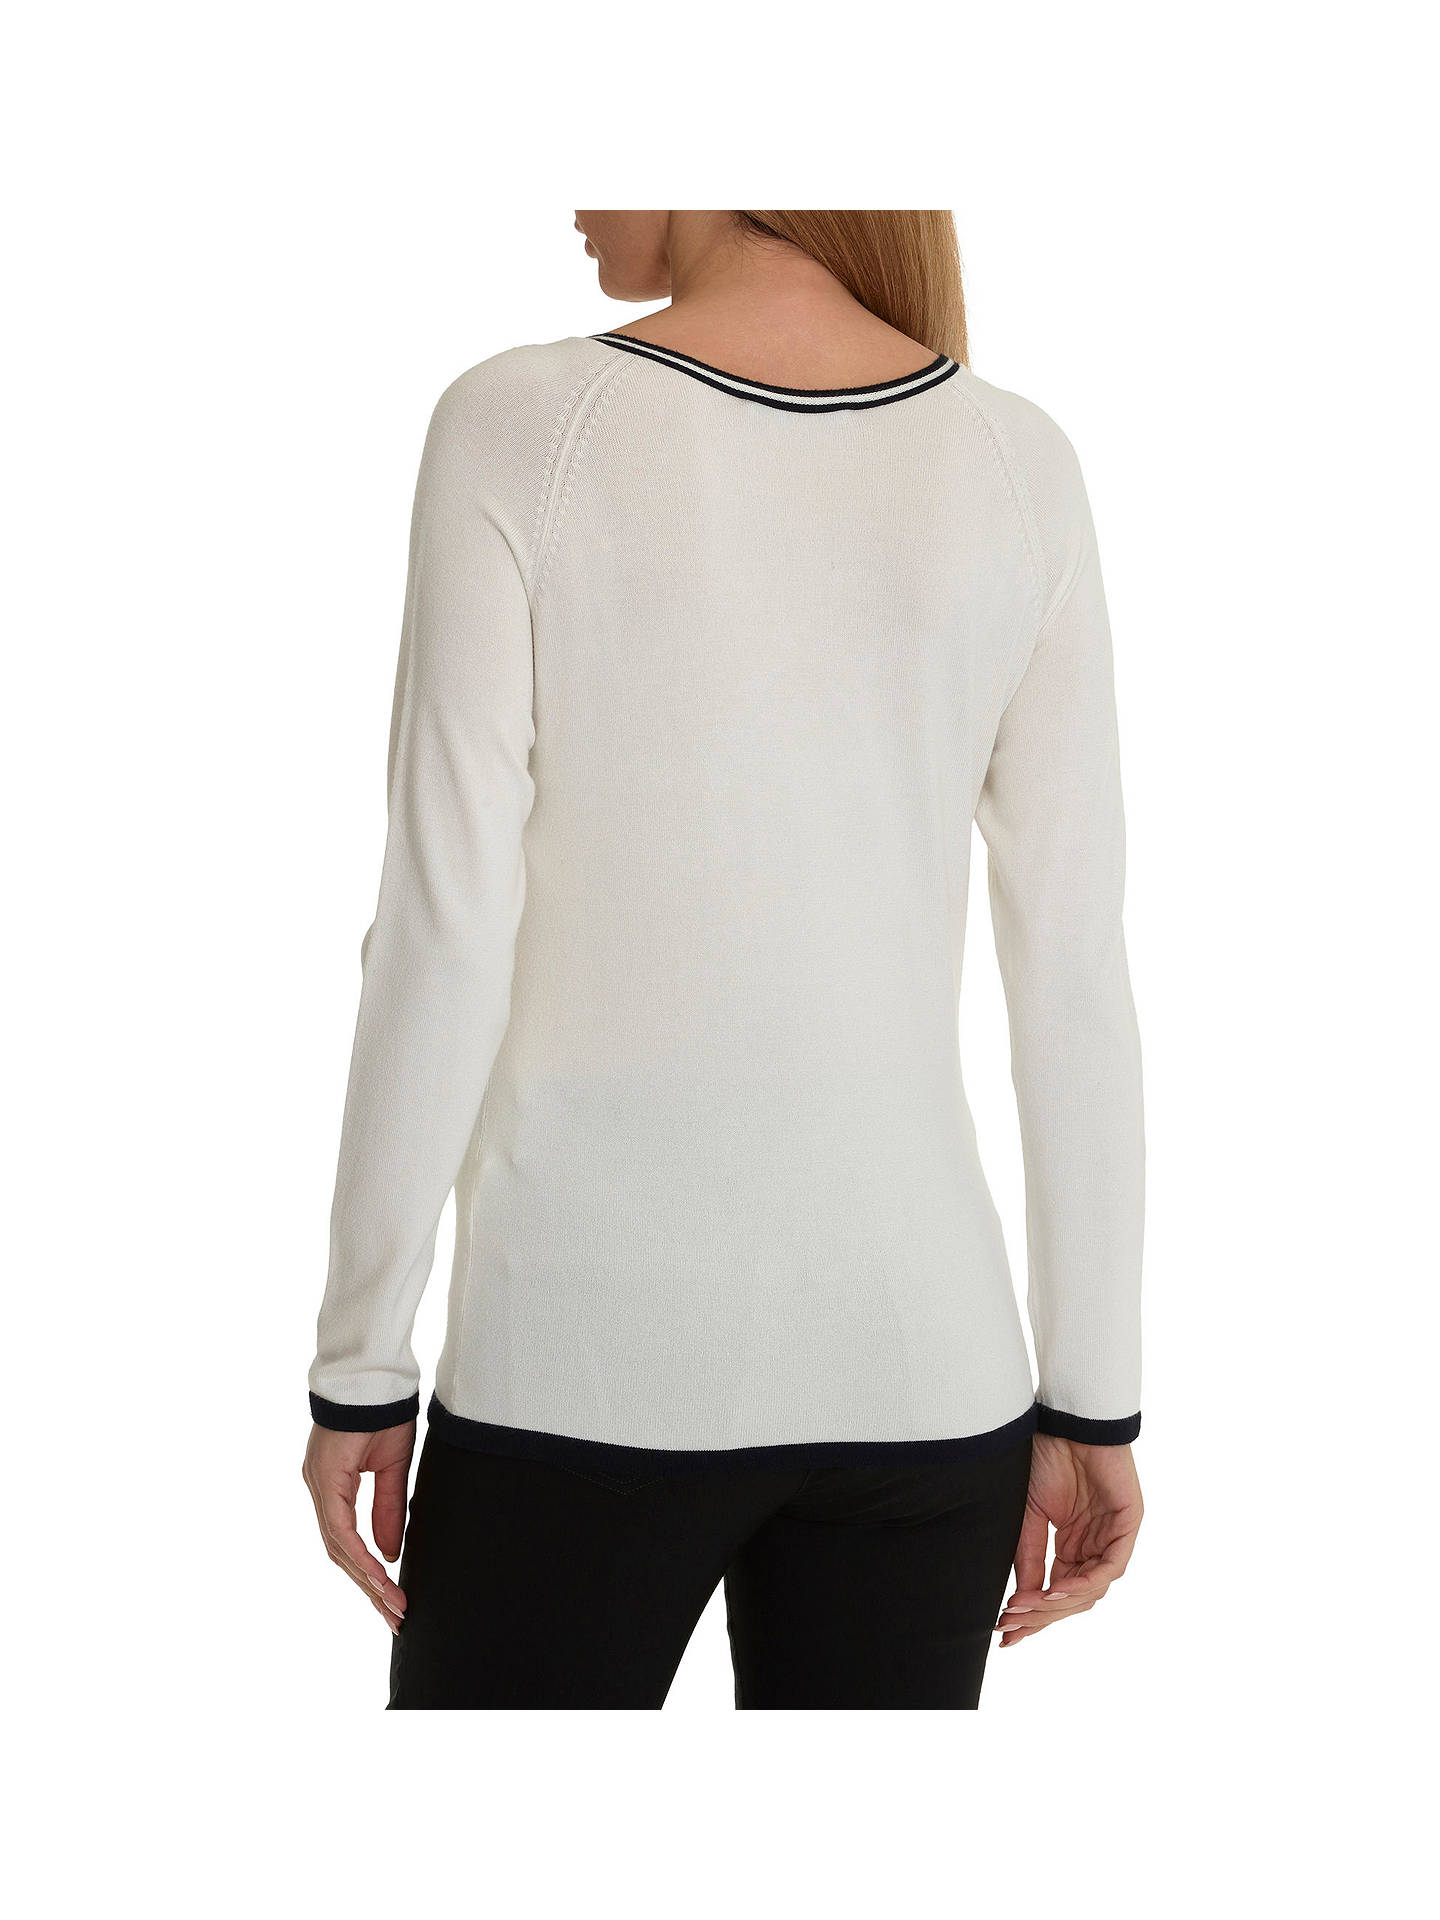 Buy Betty Barclay Embellished Jumper, Cream/Dark Blue, 10 Online at johnlewis.com